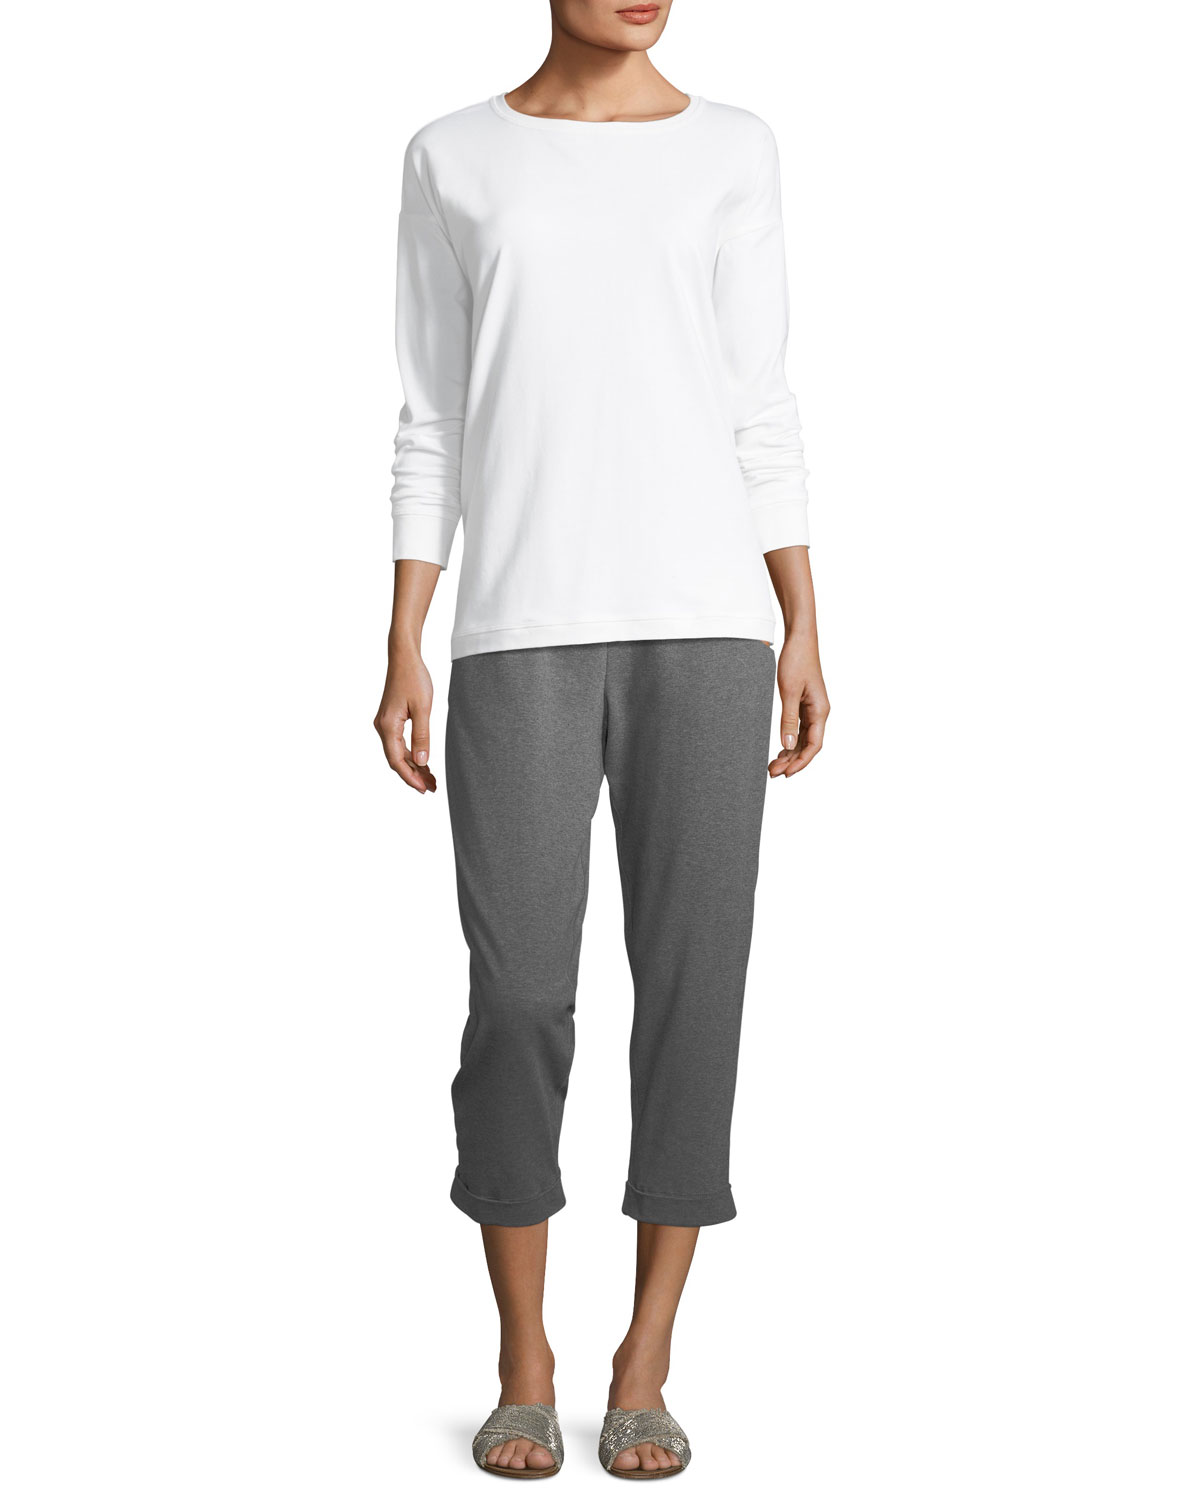 Heathered Stretch Jersey Slouchy Cropped Pants, Petite